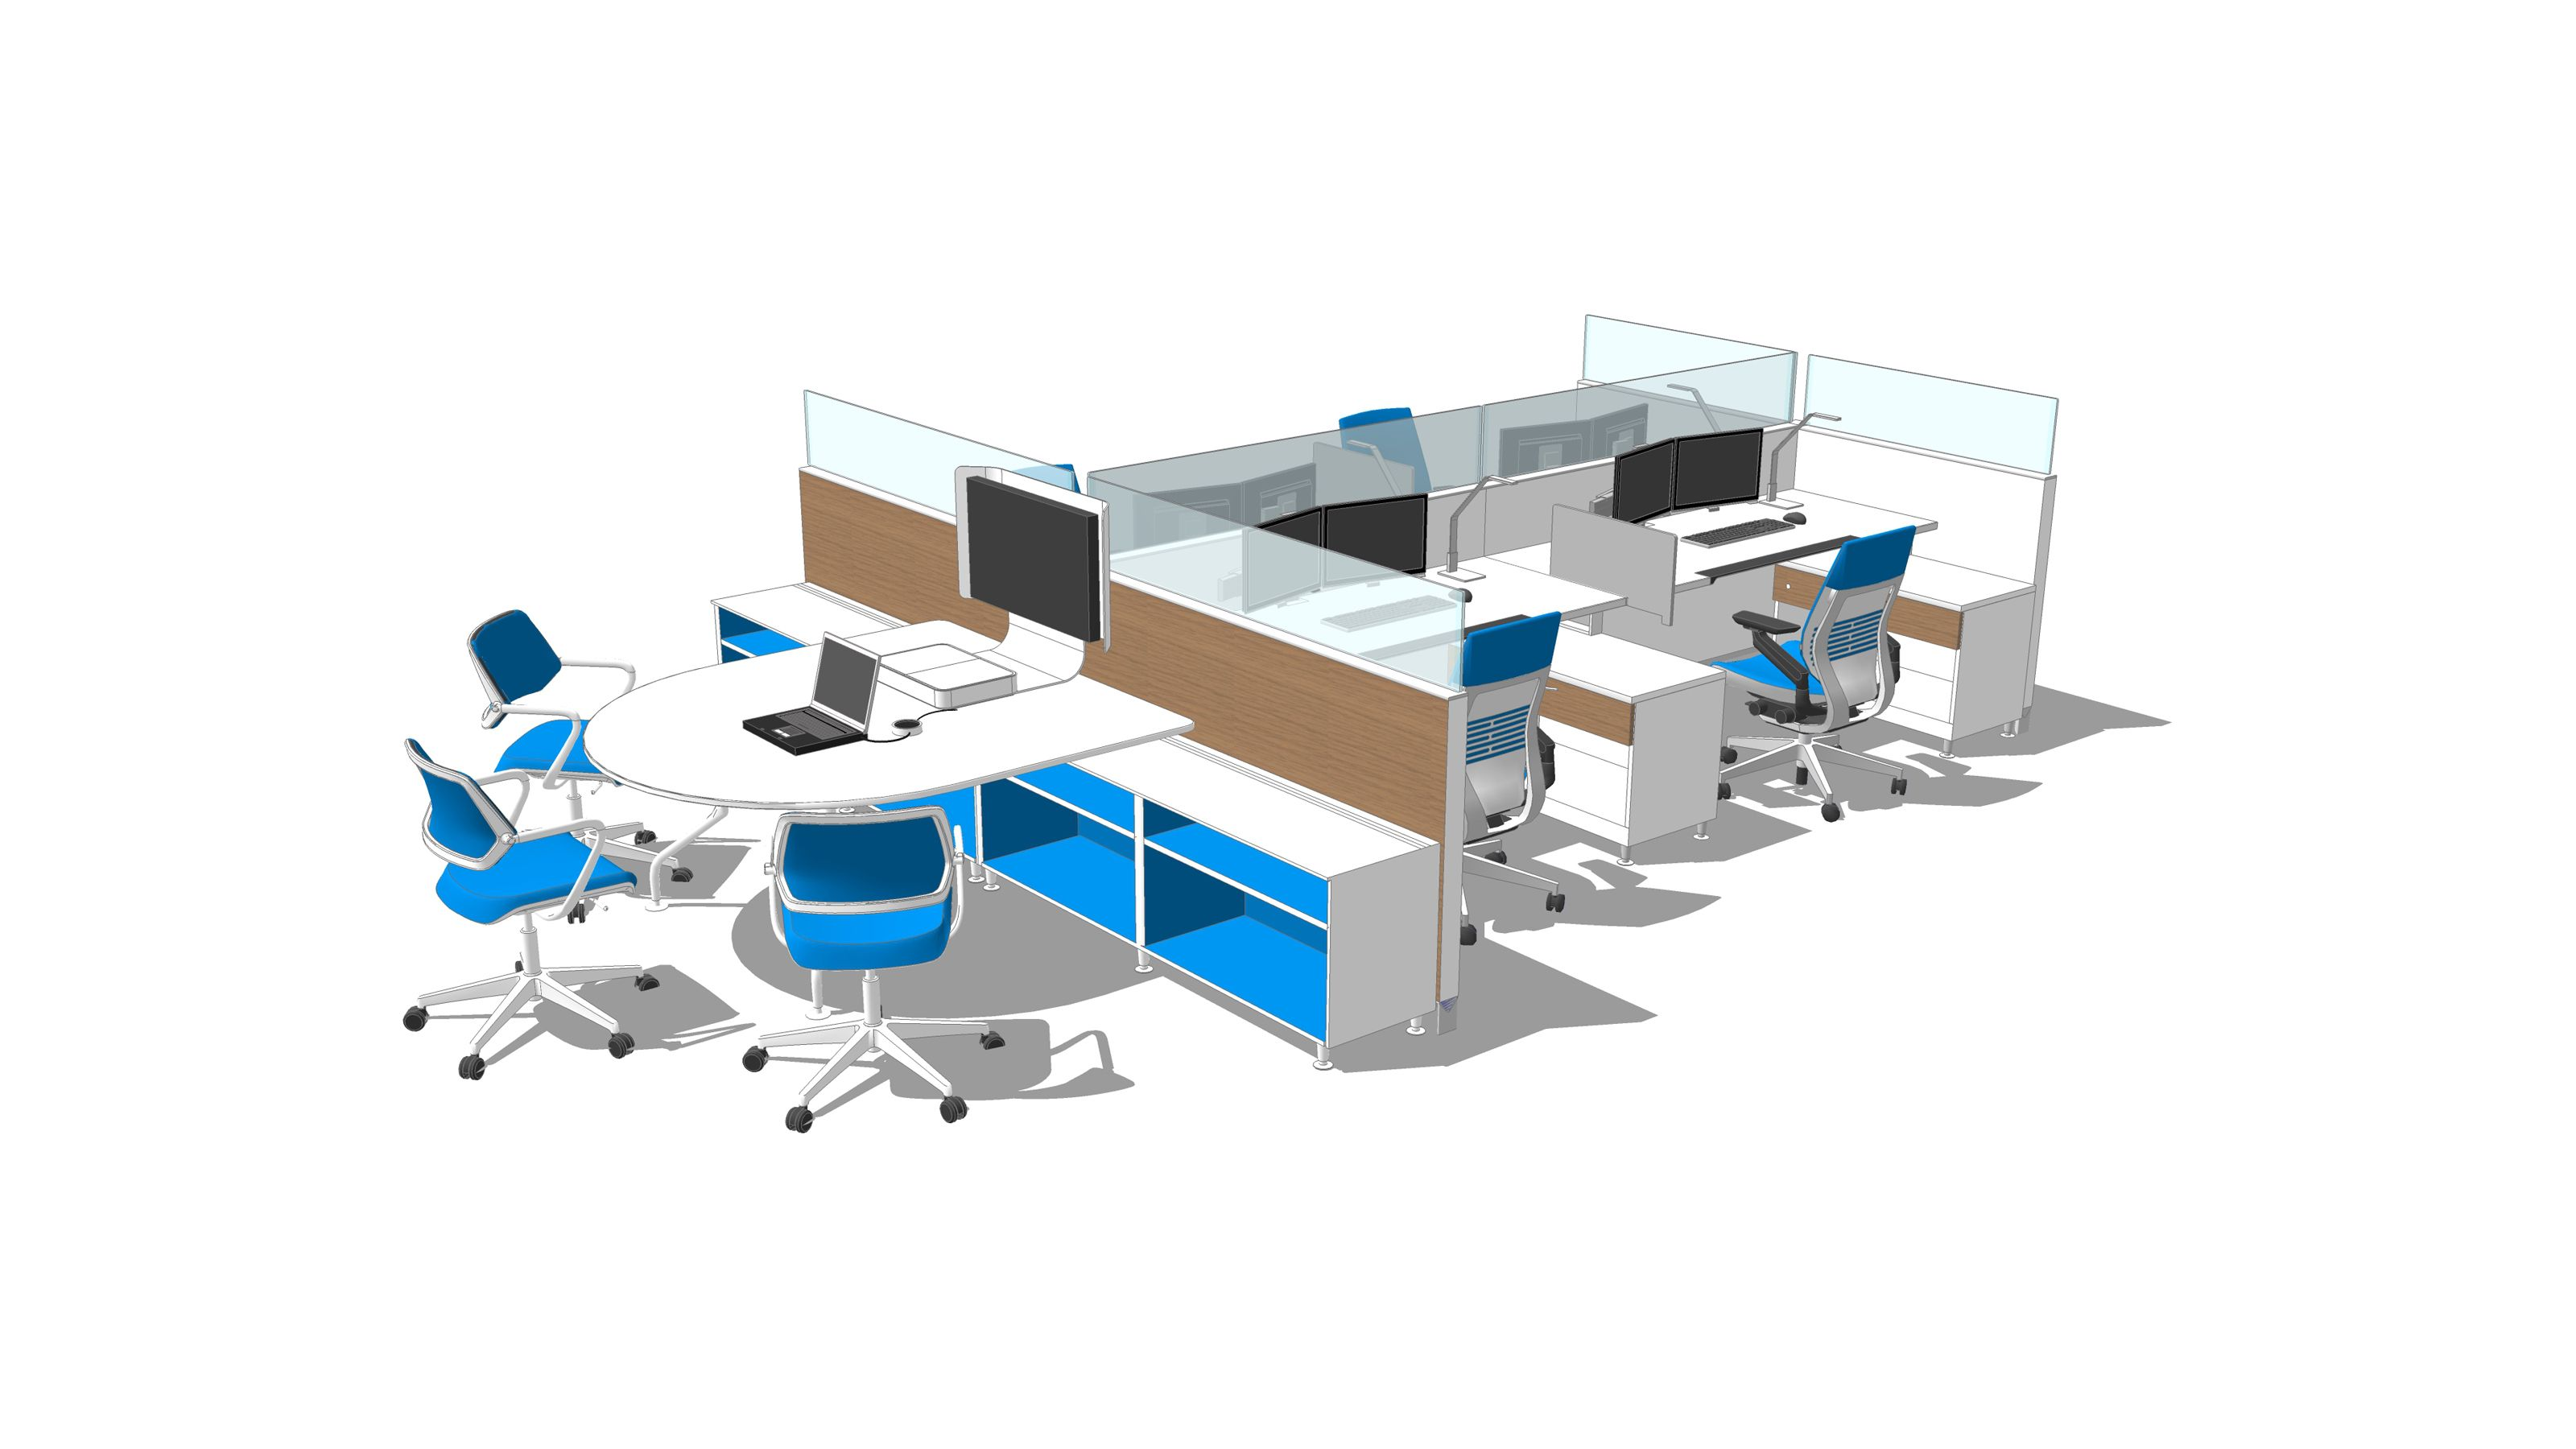 PW9AW2GA Steelcase, Workplace design office, Workplace